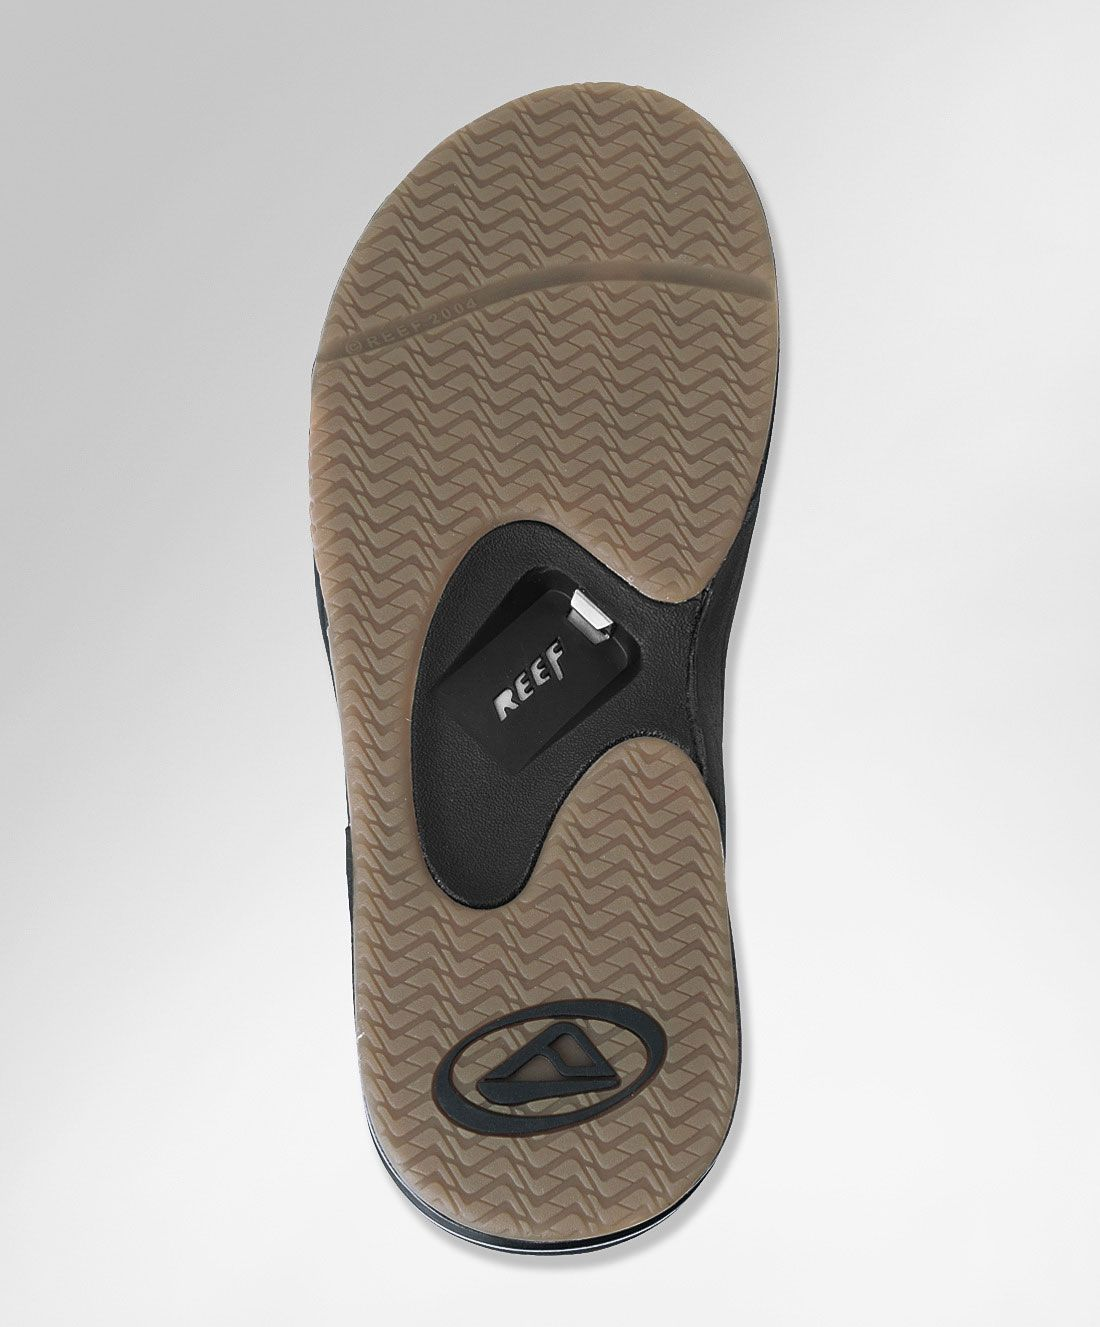 546ac7460843 Flip Flop Bottle Opener Makes You The MacGyver Of The Beach